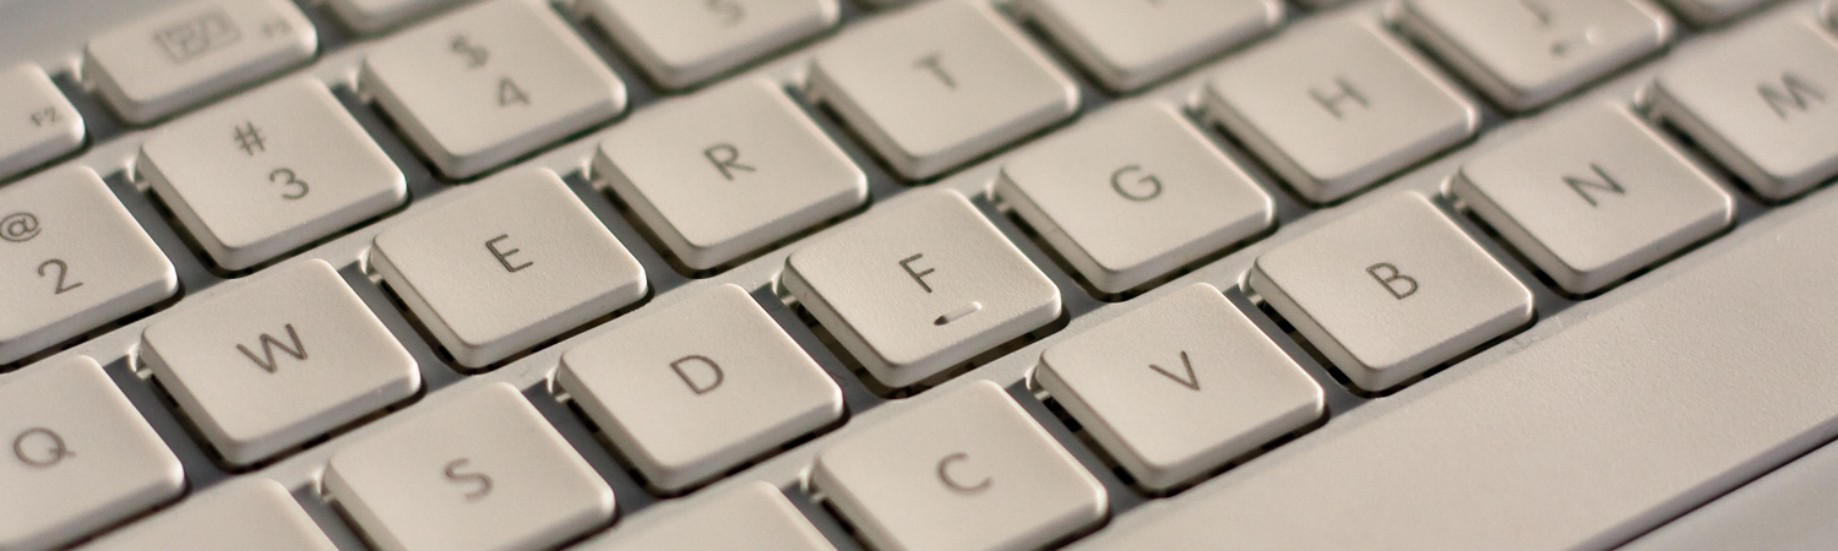 41e029f8dc0 How to share your bluetooth keyboard on target display mode.